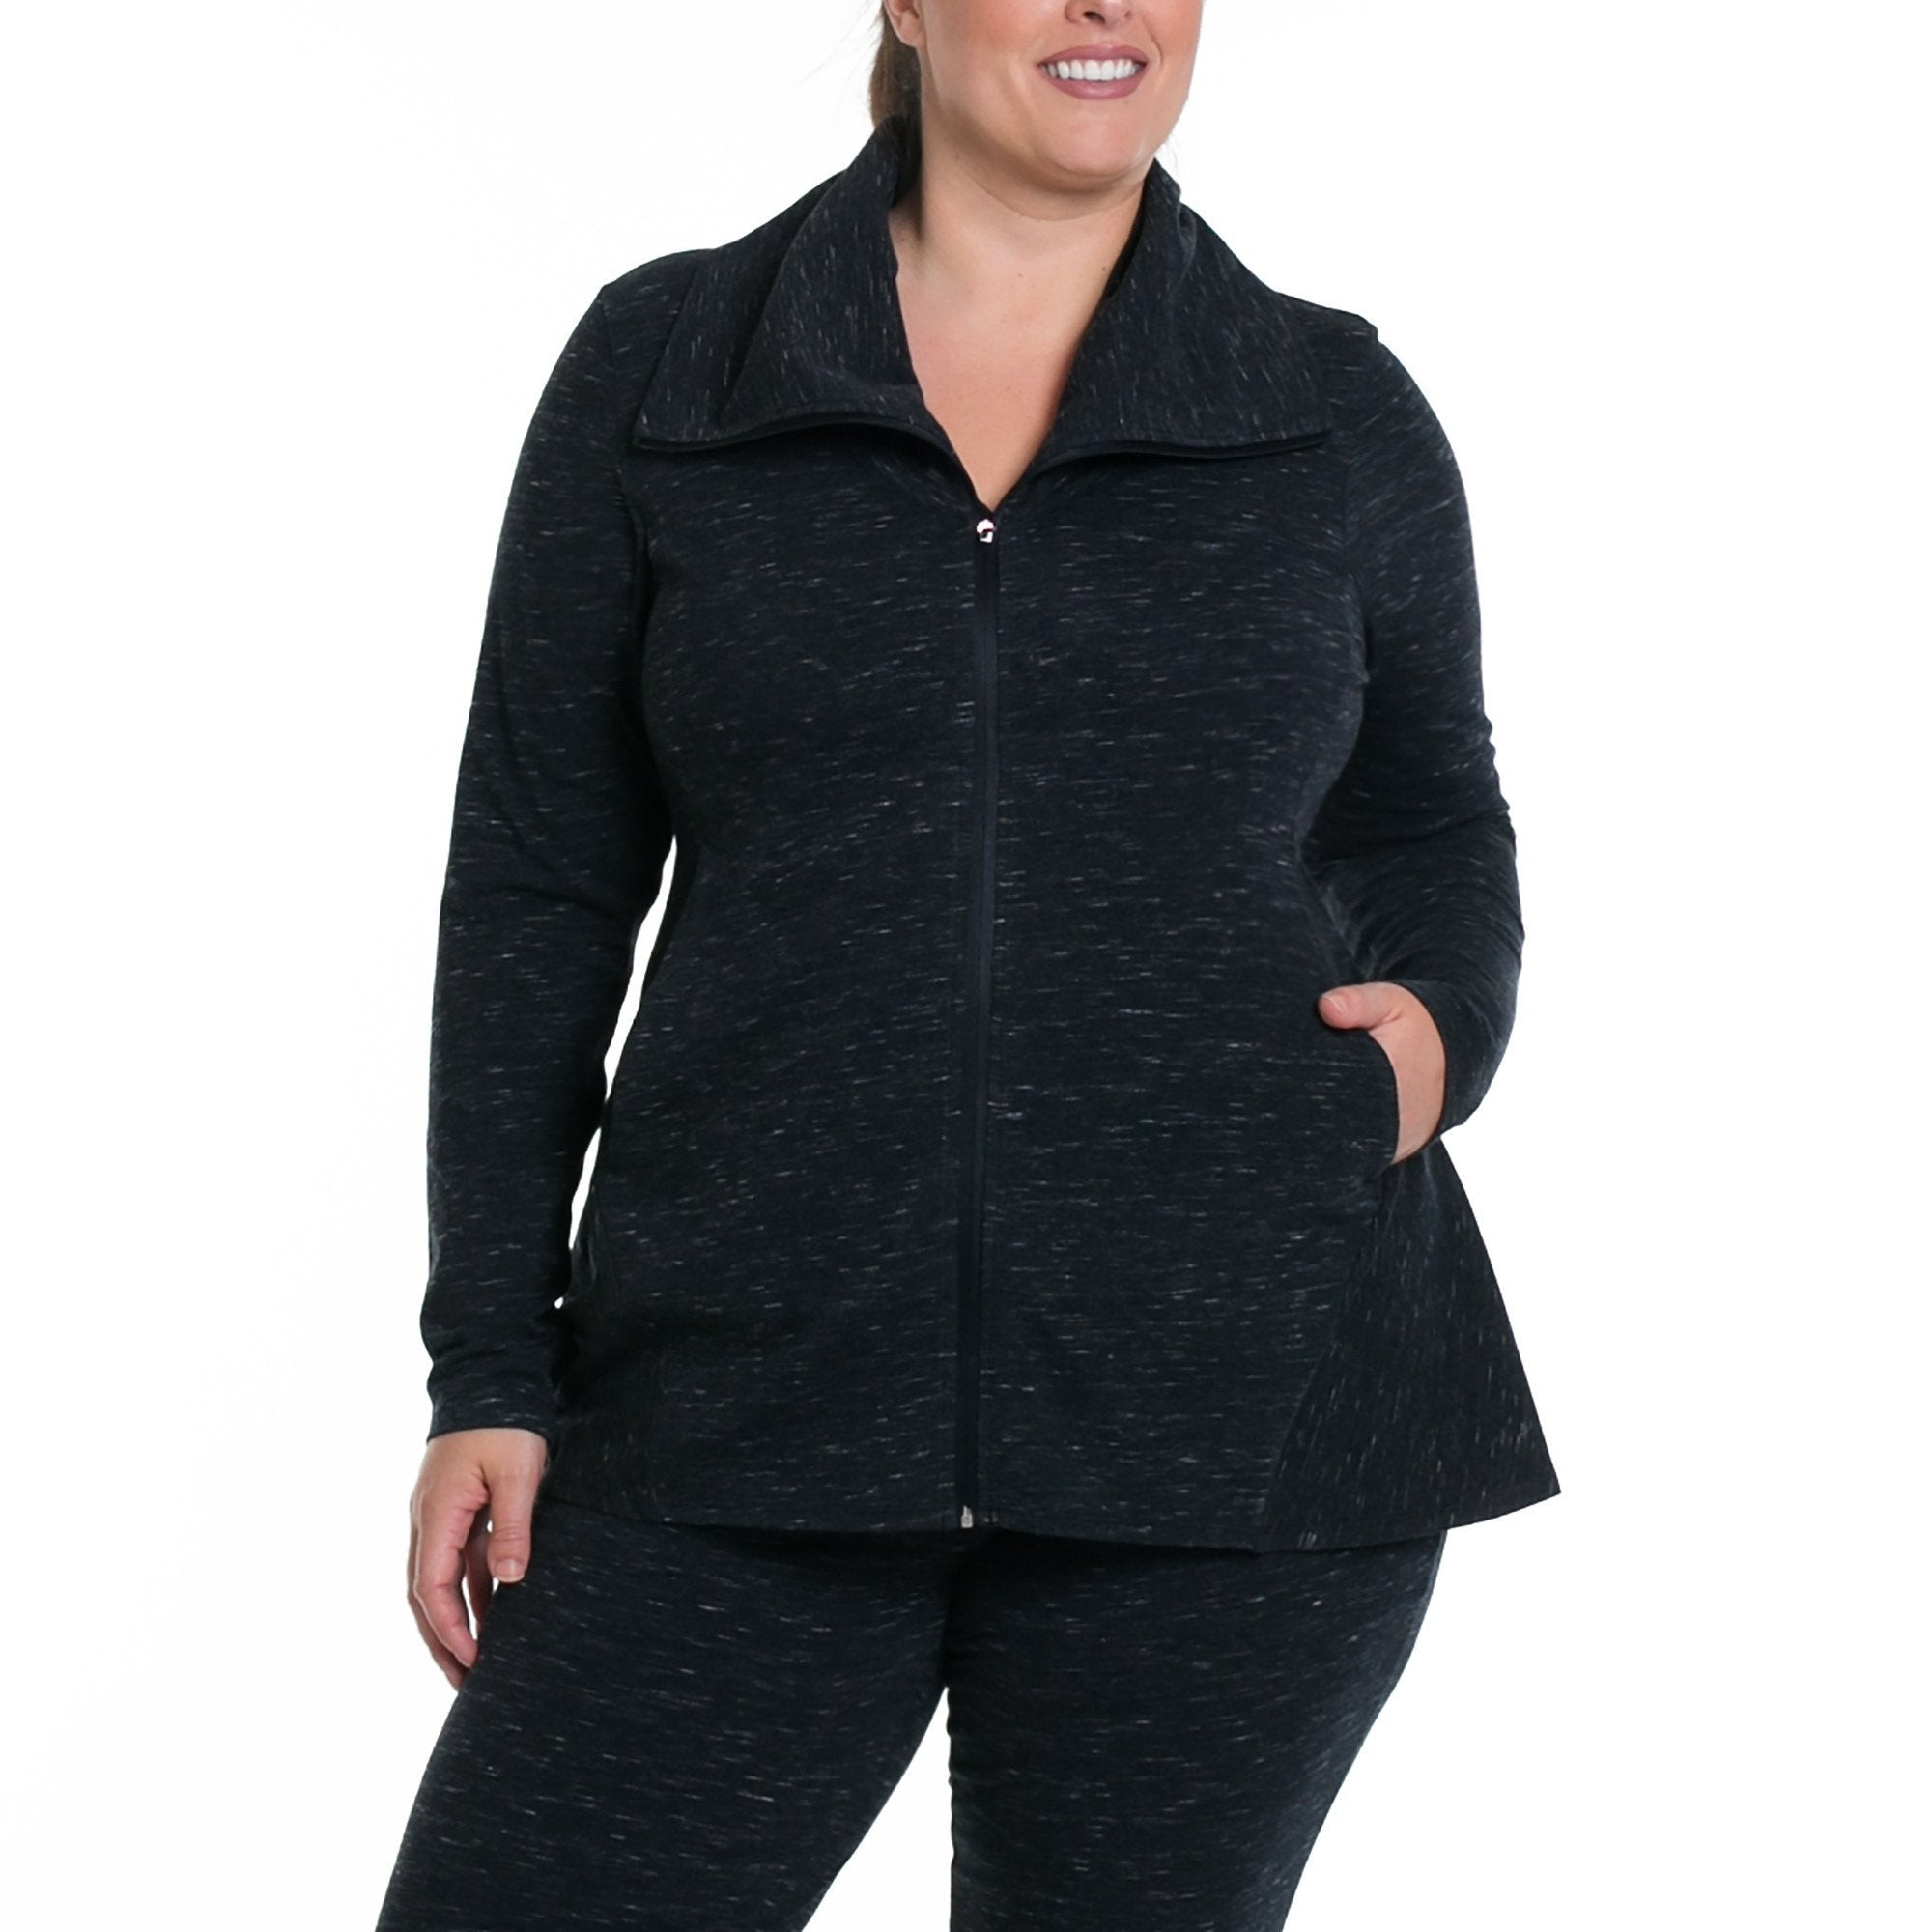 Jamie Jacket - Rainbeau Curves, 14/16 / Marled Black, activewear, athleisure, fitness, workout, gym, performance, womens, ladies, plus size, curvy, full figured, spandex, cotton, polyester - 1